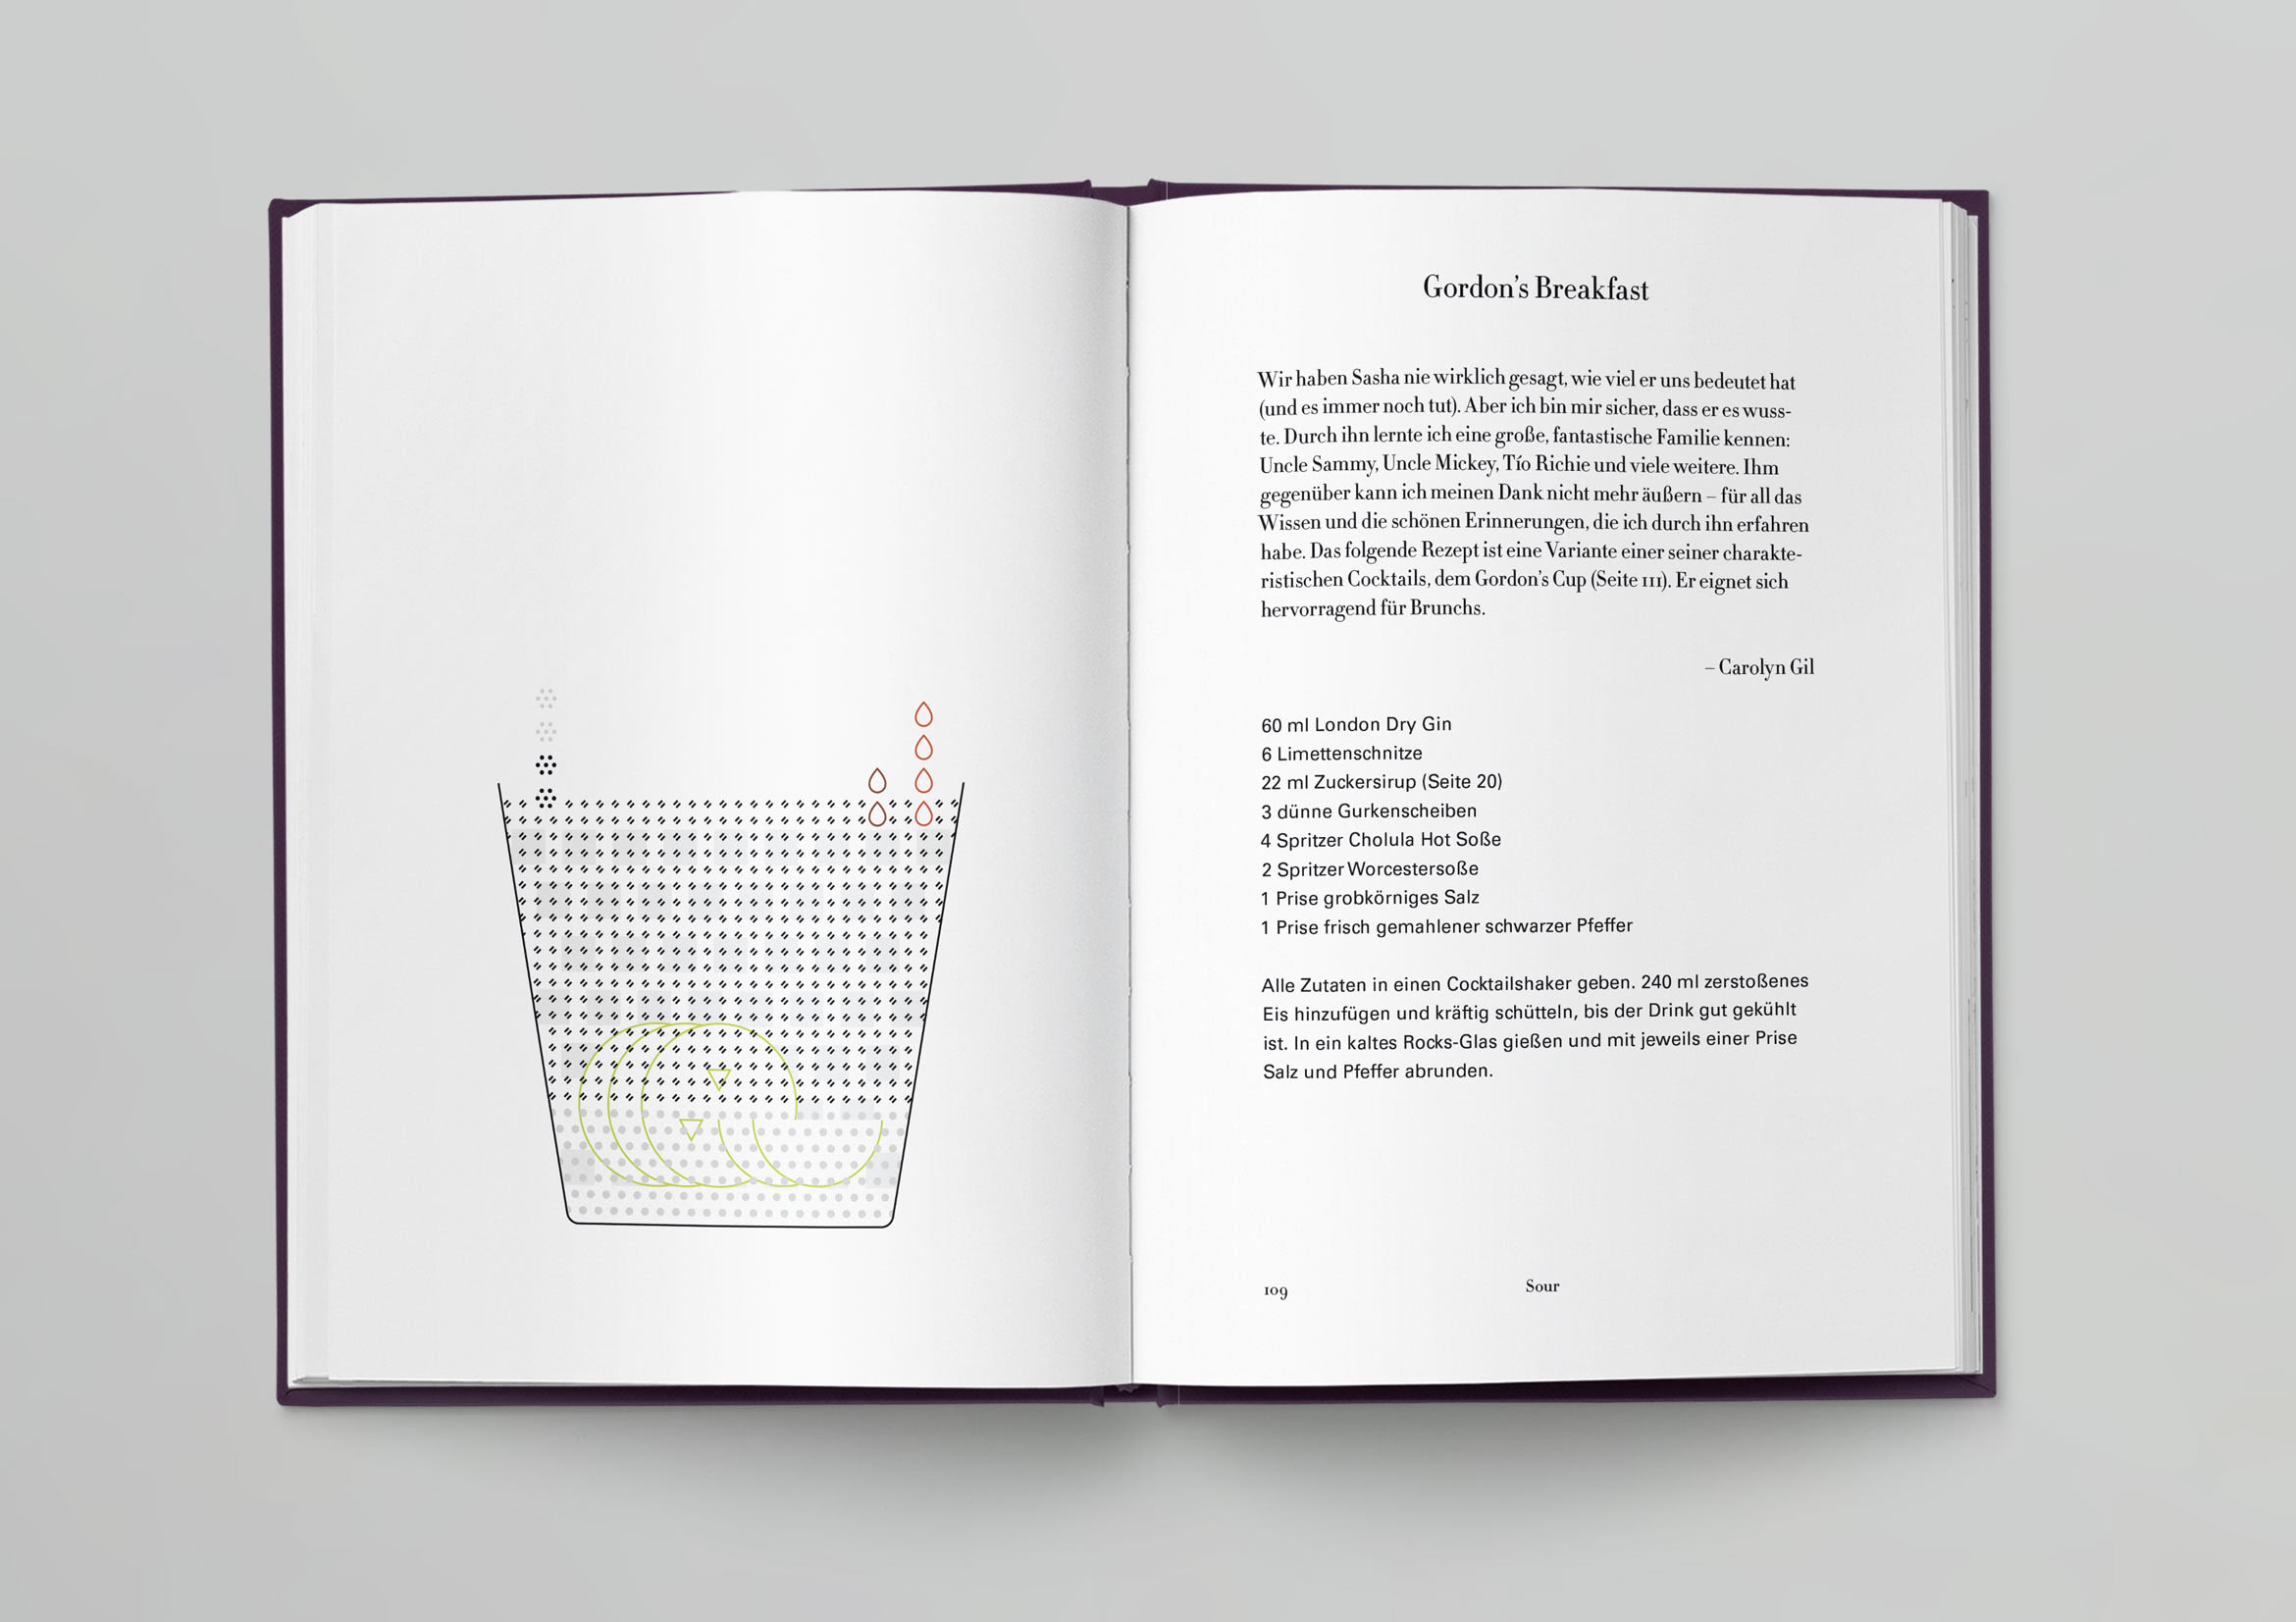 87356-Petraske-Phaidon-Cocktails-Mock-Up-IN05